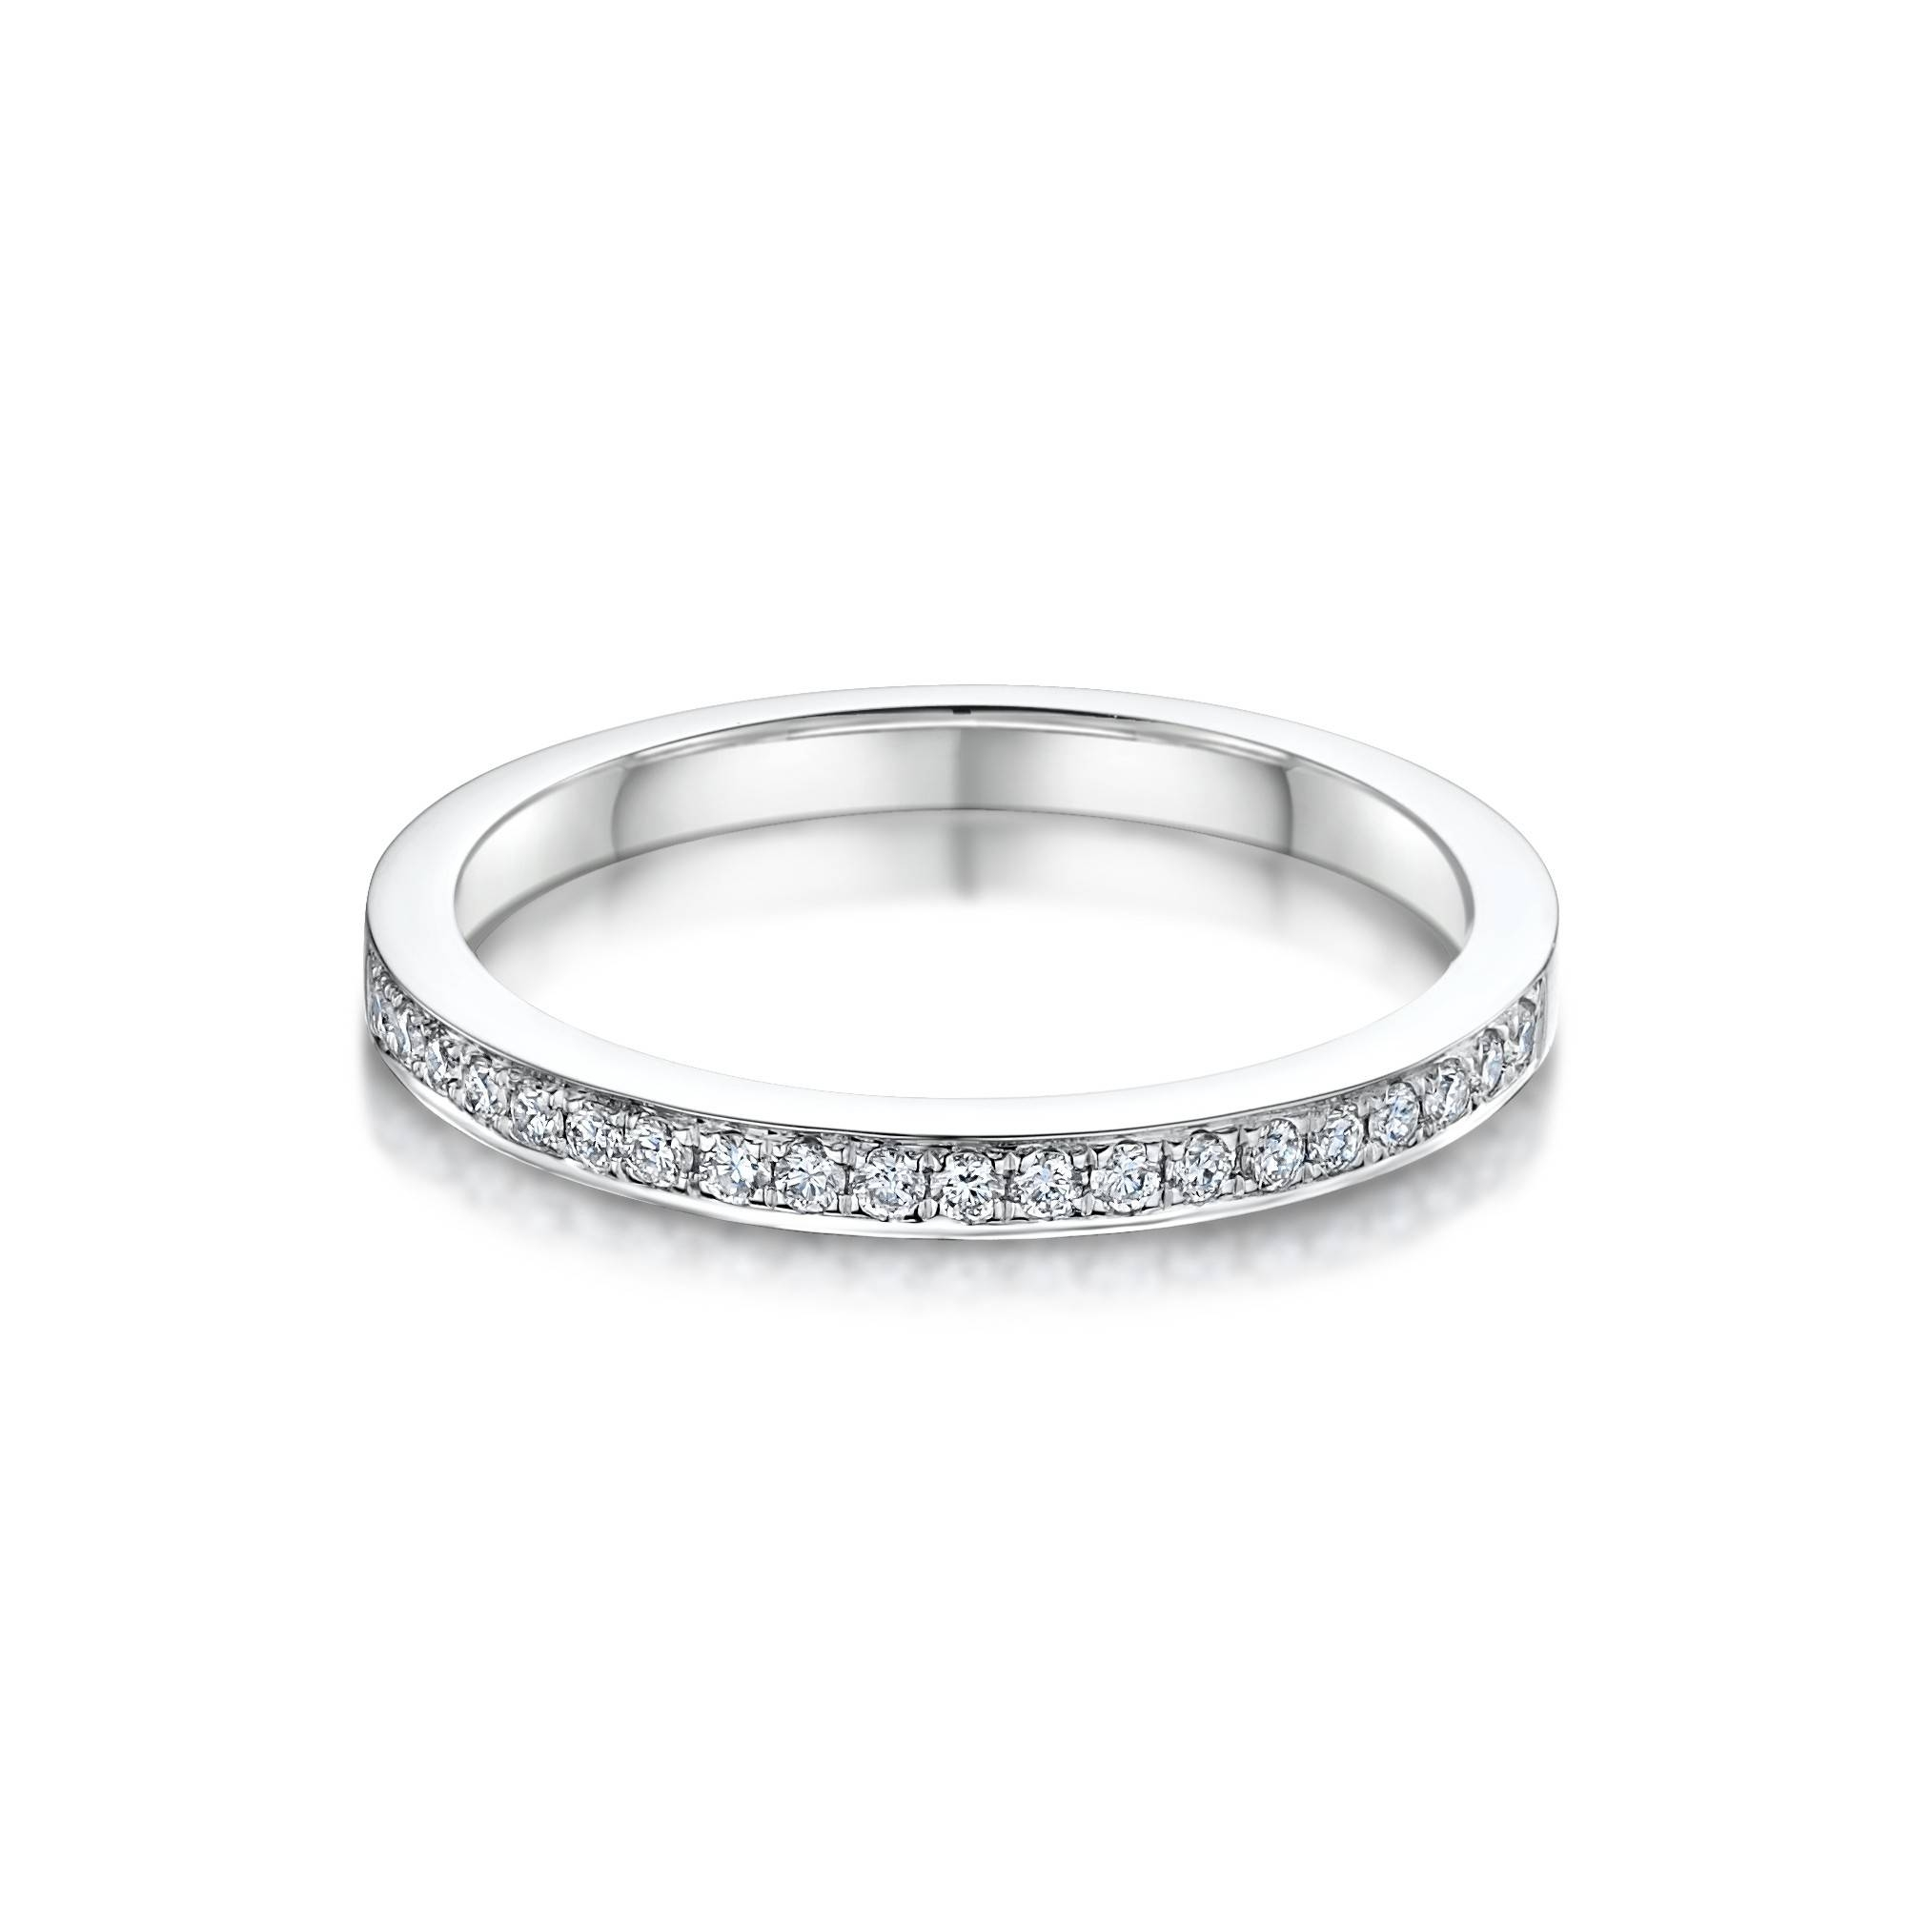 Sienna Diamond Set Platinum Wedding Band | Laings The Jeweller With Regard To Best And Newest Platinum Wedding Band With Diamonds (View 11 of 15)